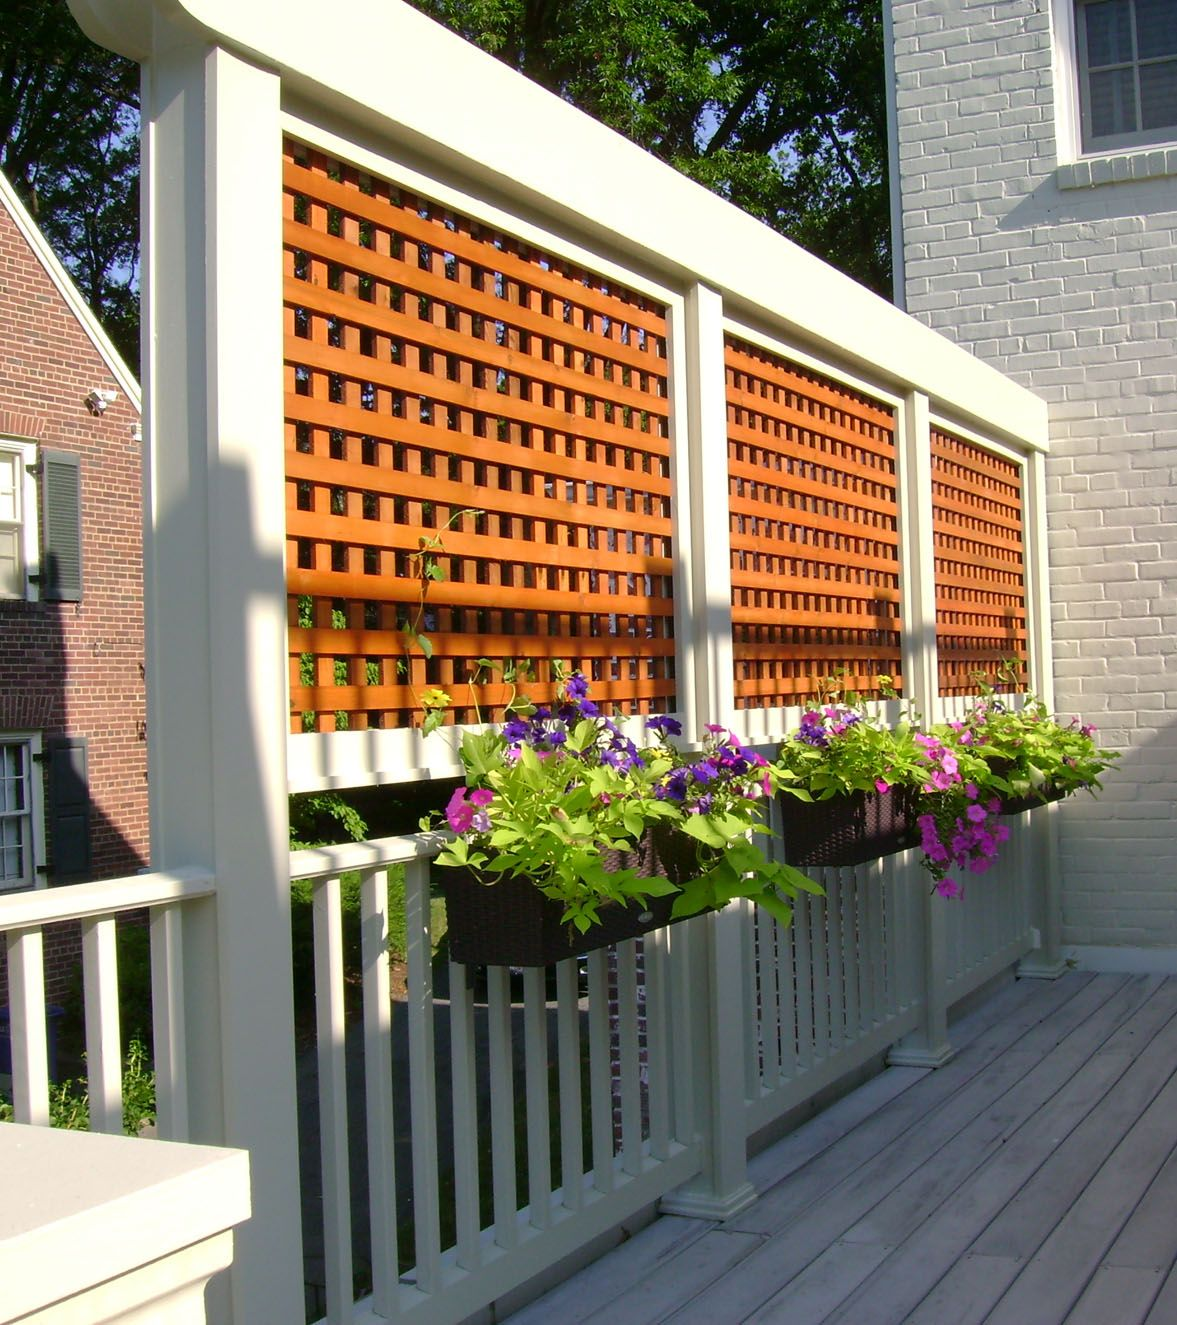 A little privacy makes for good neighbors petro design for Back patio porch designs